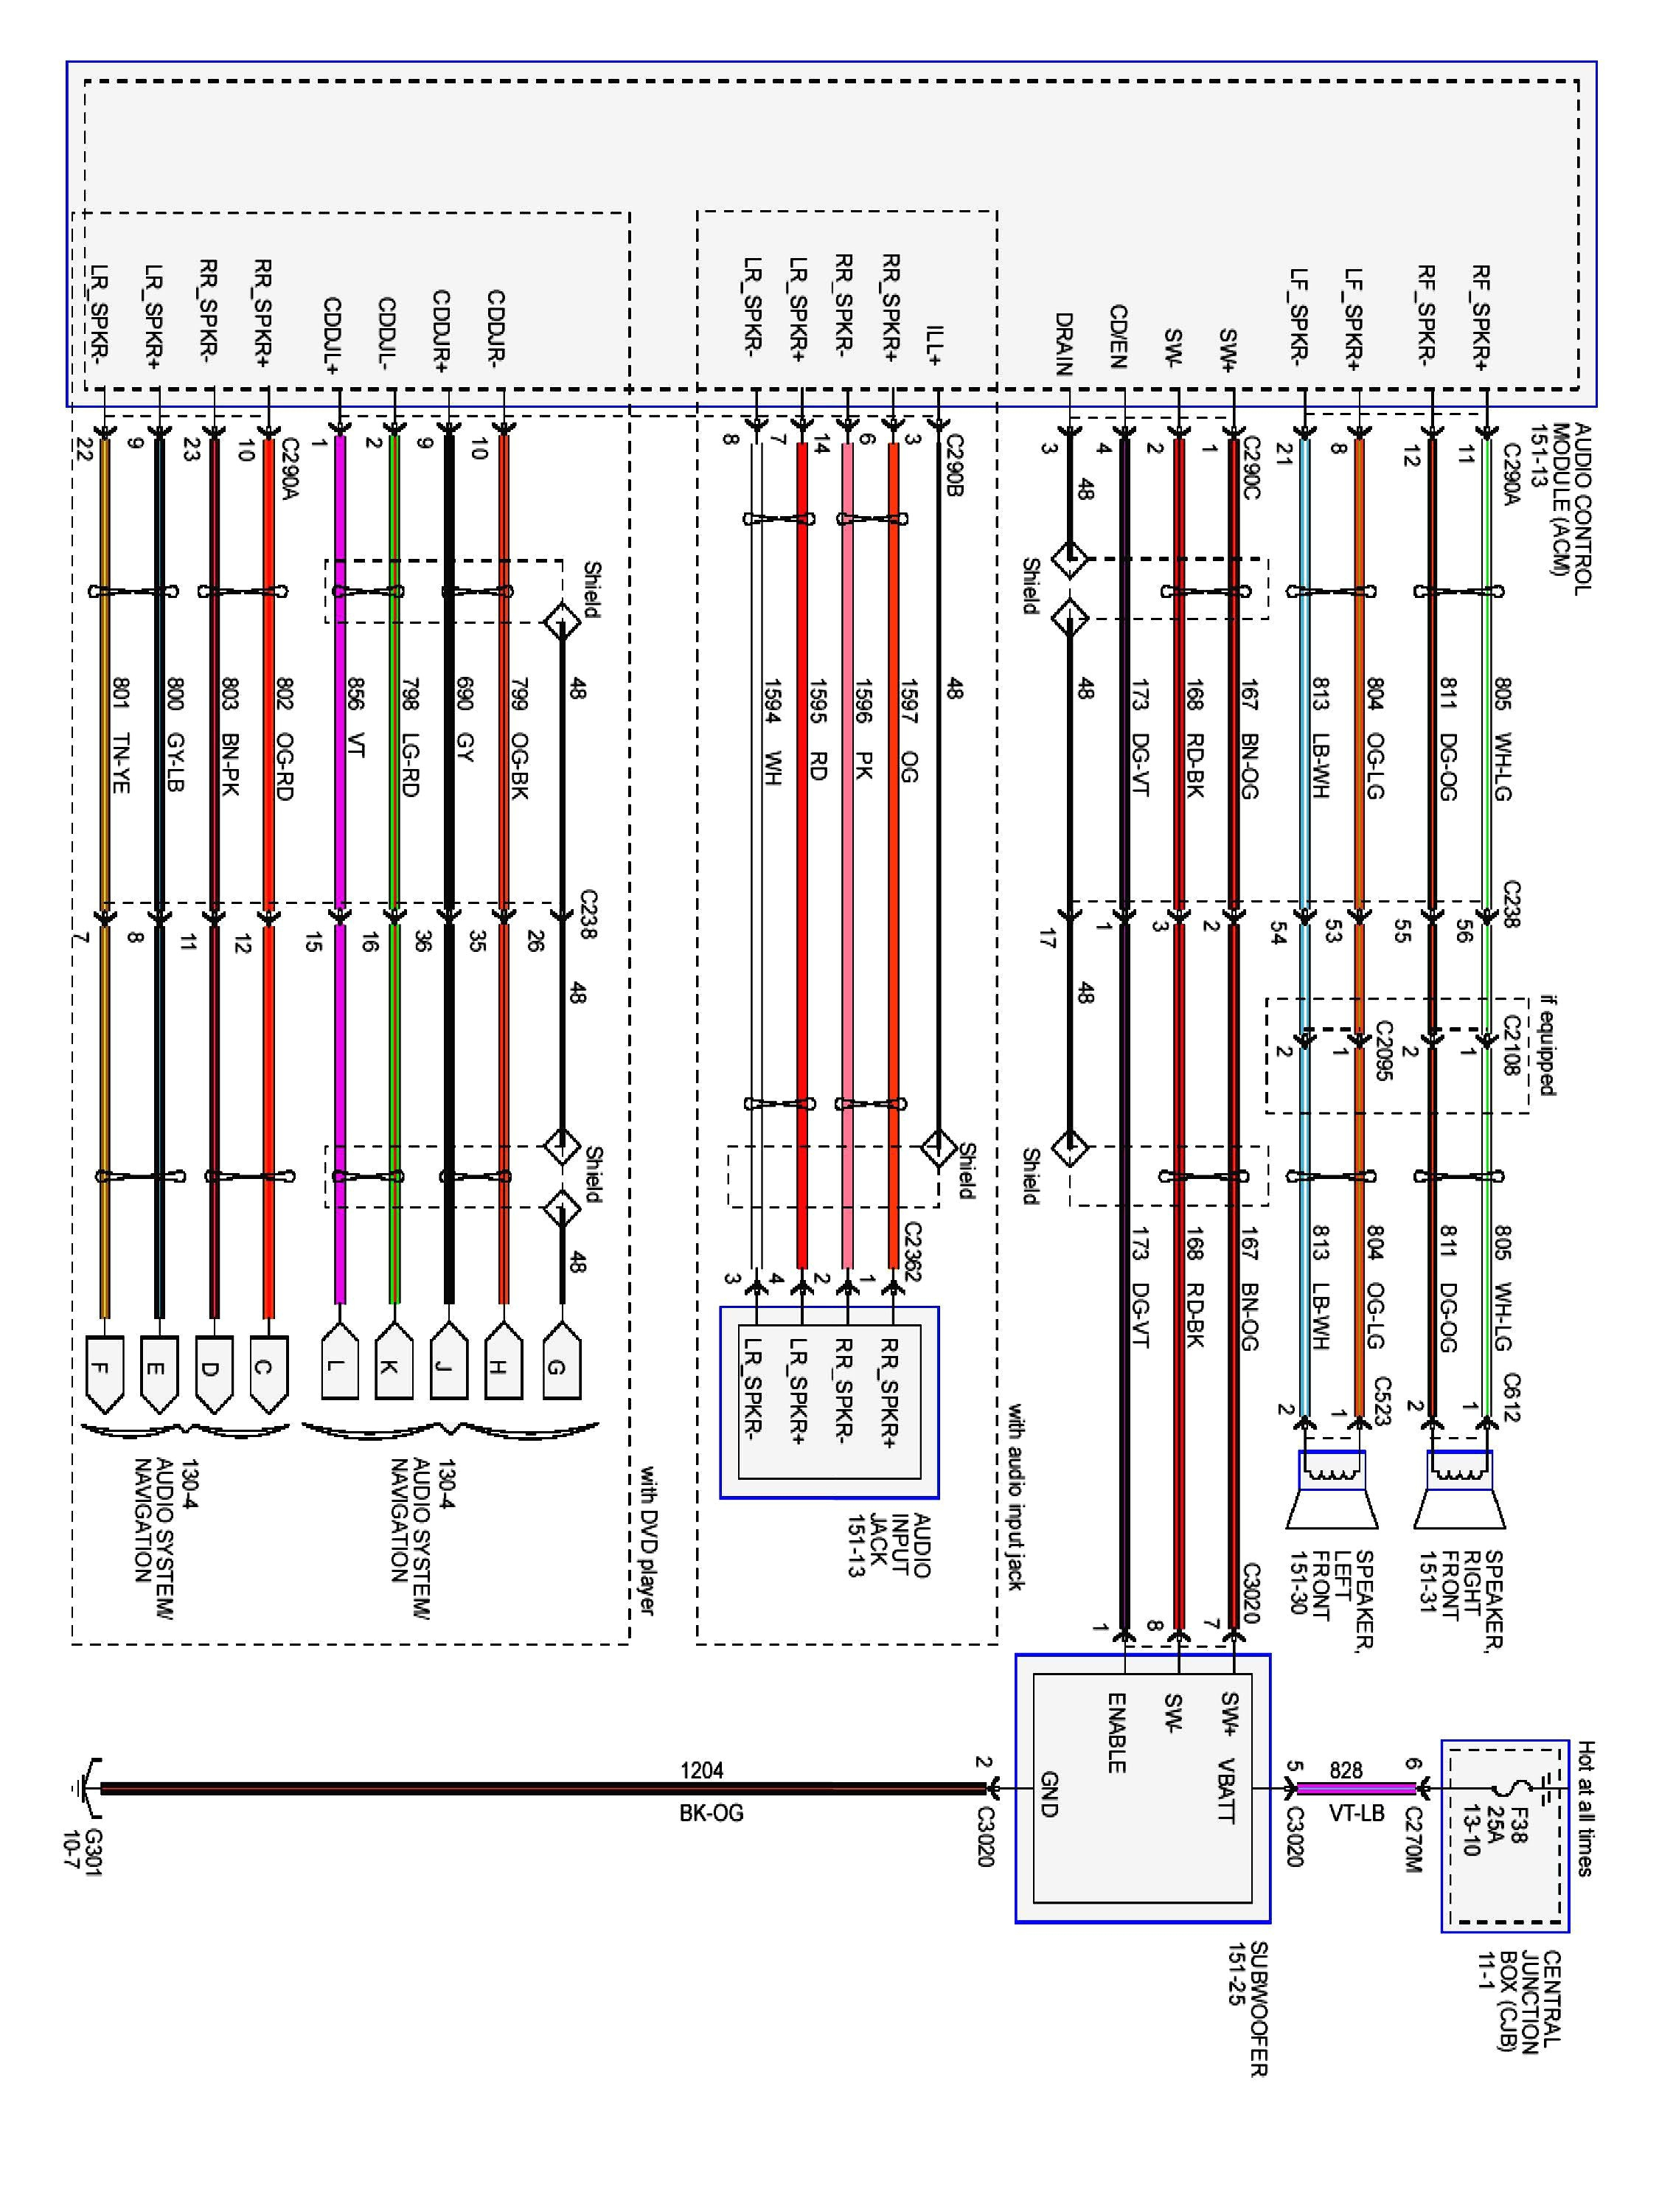 2013 ford radio wiring diagram wiring diagrams updateford f 150 radio wiring diagram wiring diagram ford stereo wiring color codes 2003 chevy impala